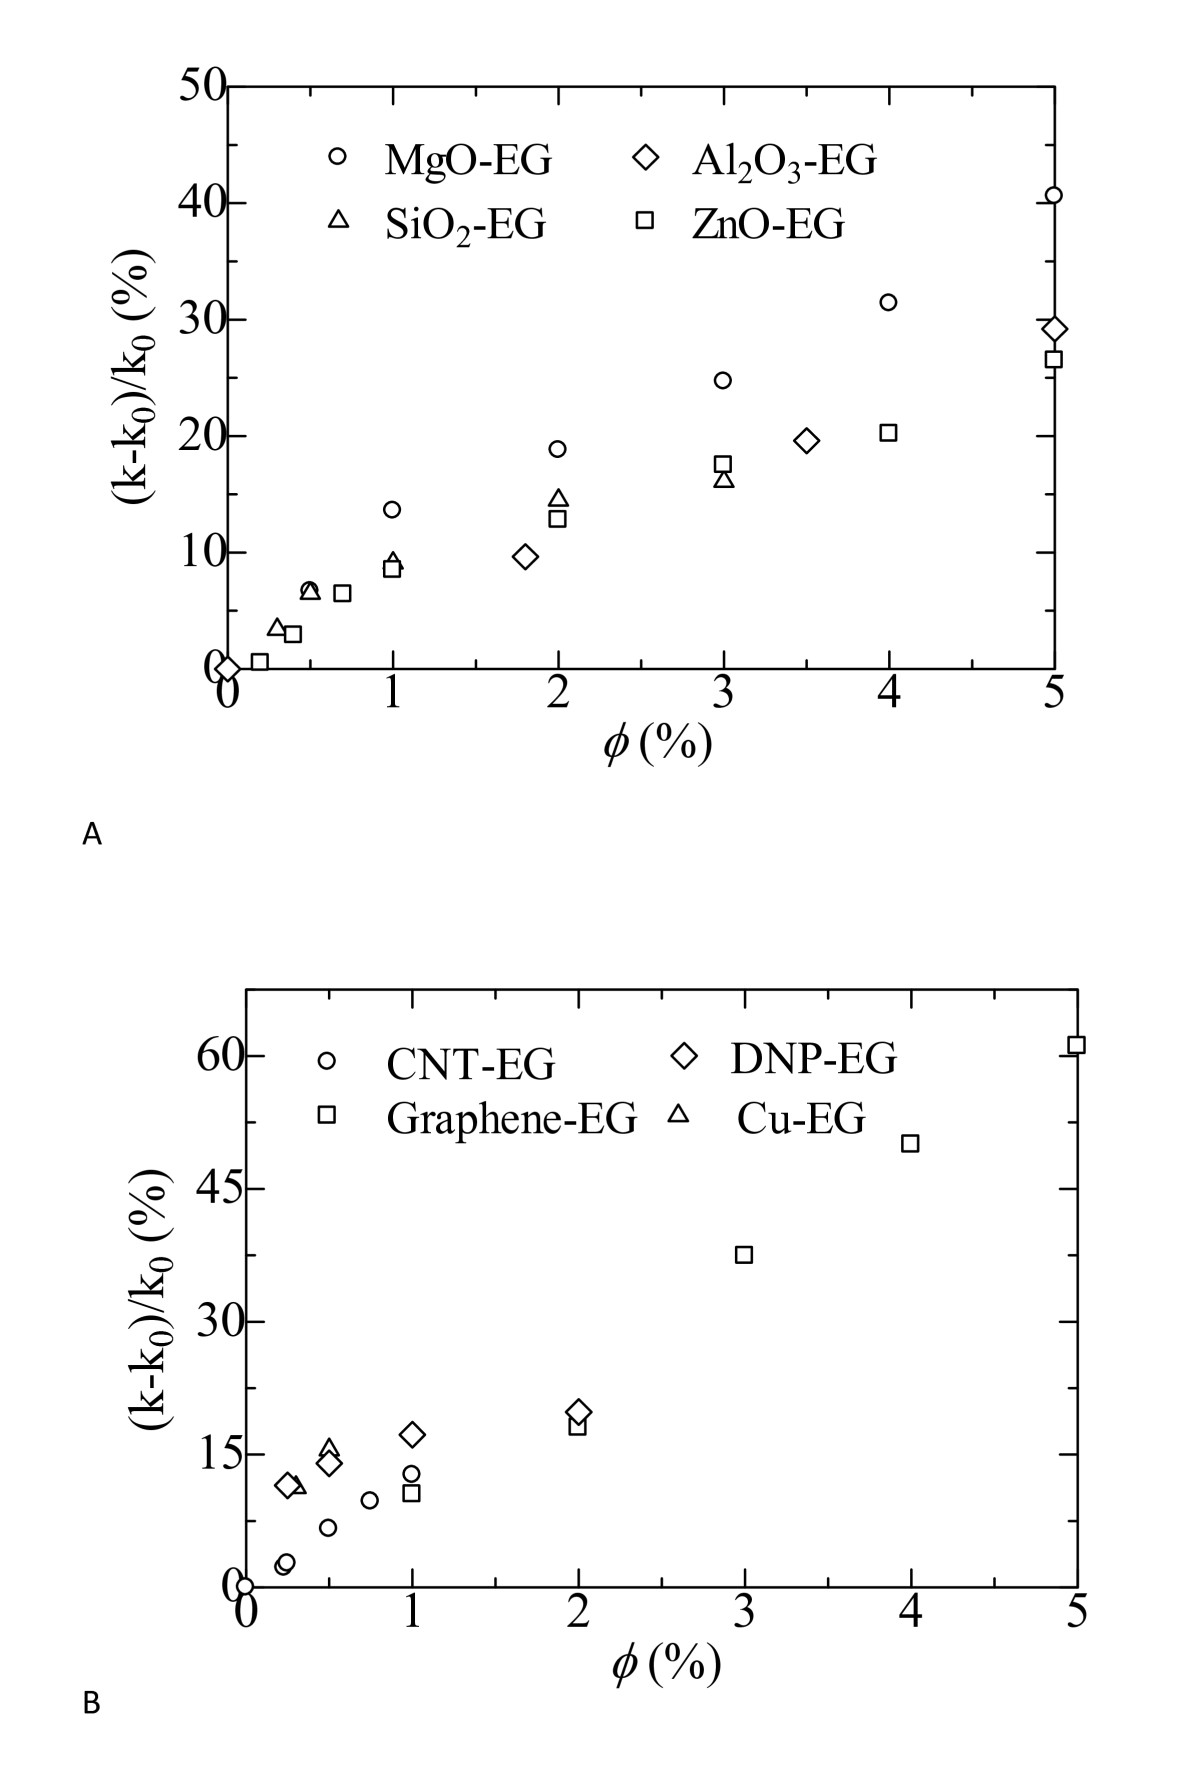 http://static-content.springer.com/image/art%3A10.1186%2F1556-276X-6-124/MediaObjects/11671_2010_Article_57_Fig1_HTML.jpg